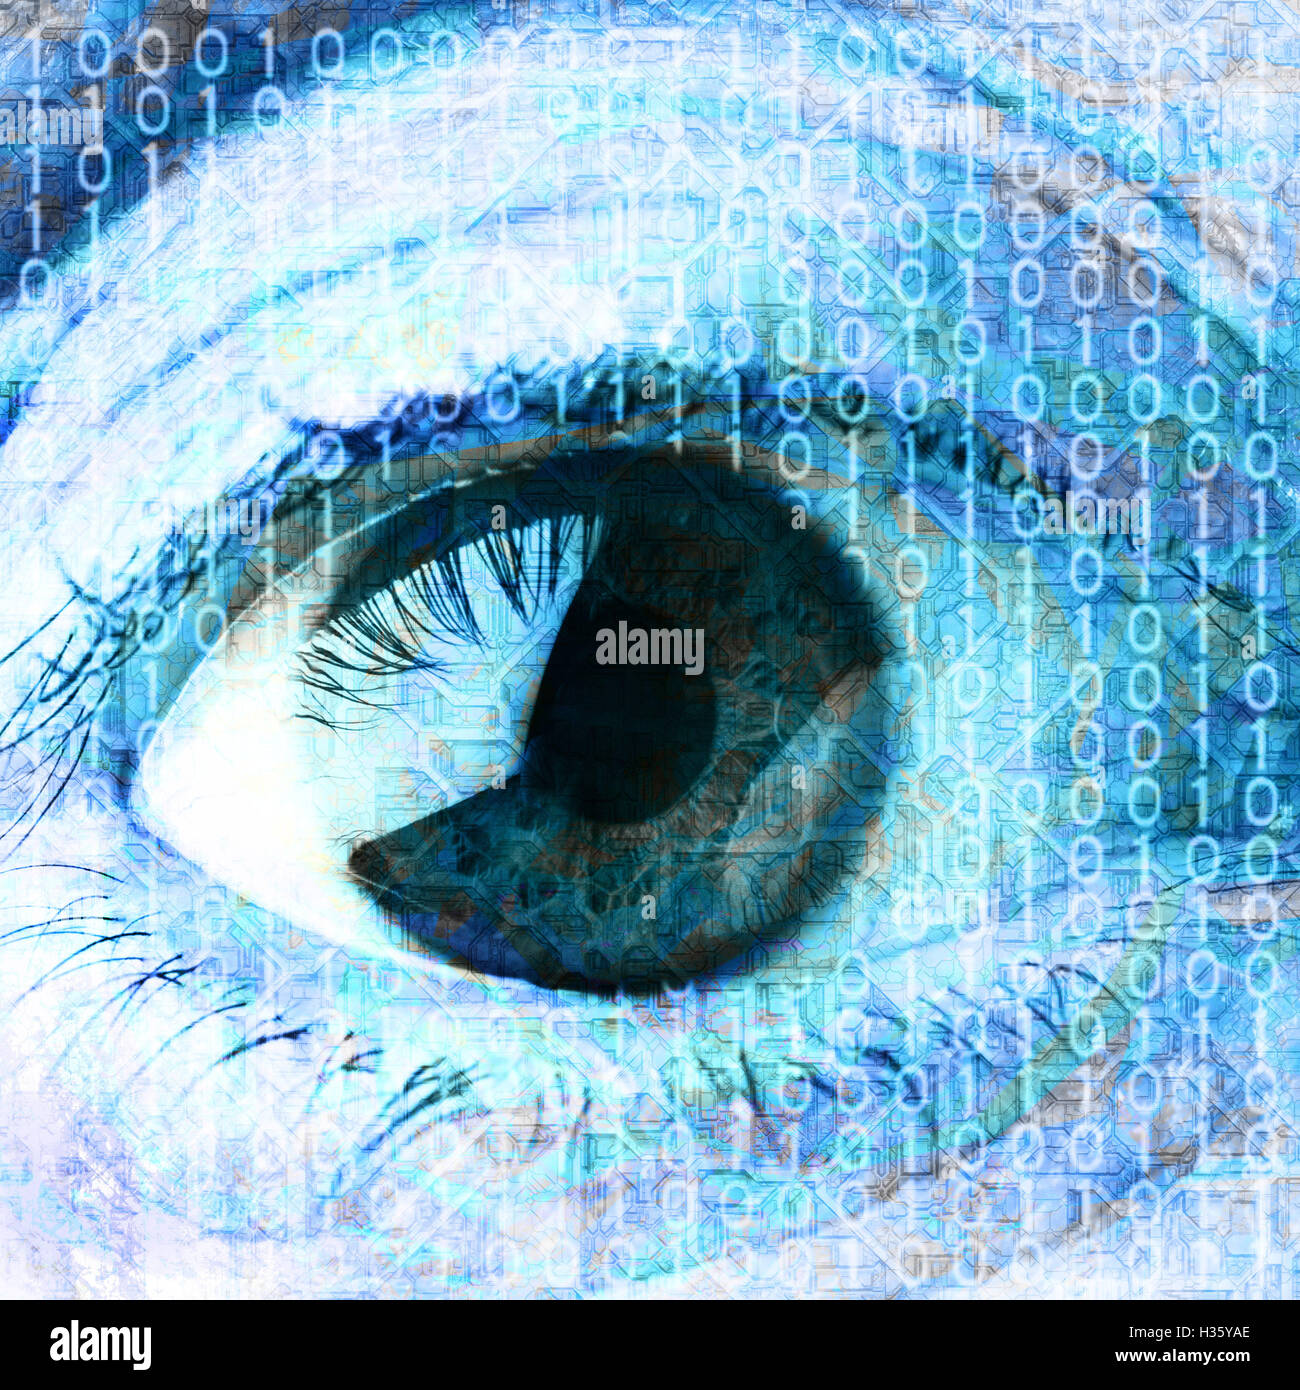 eye and binary digits - Stock Image